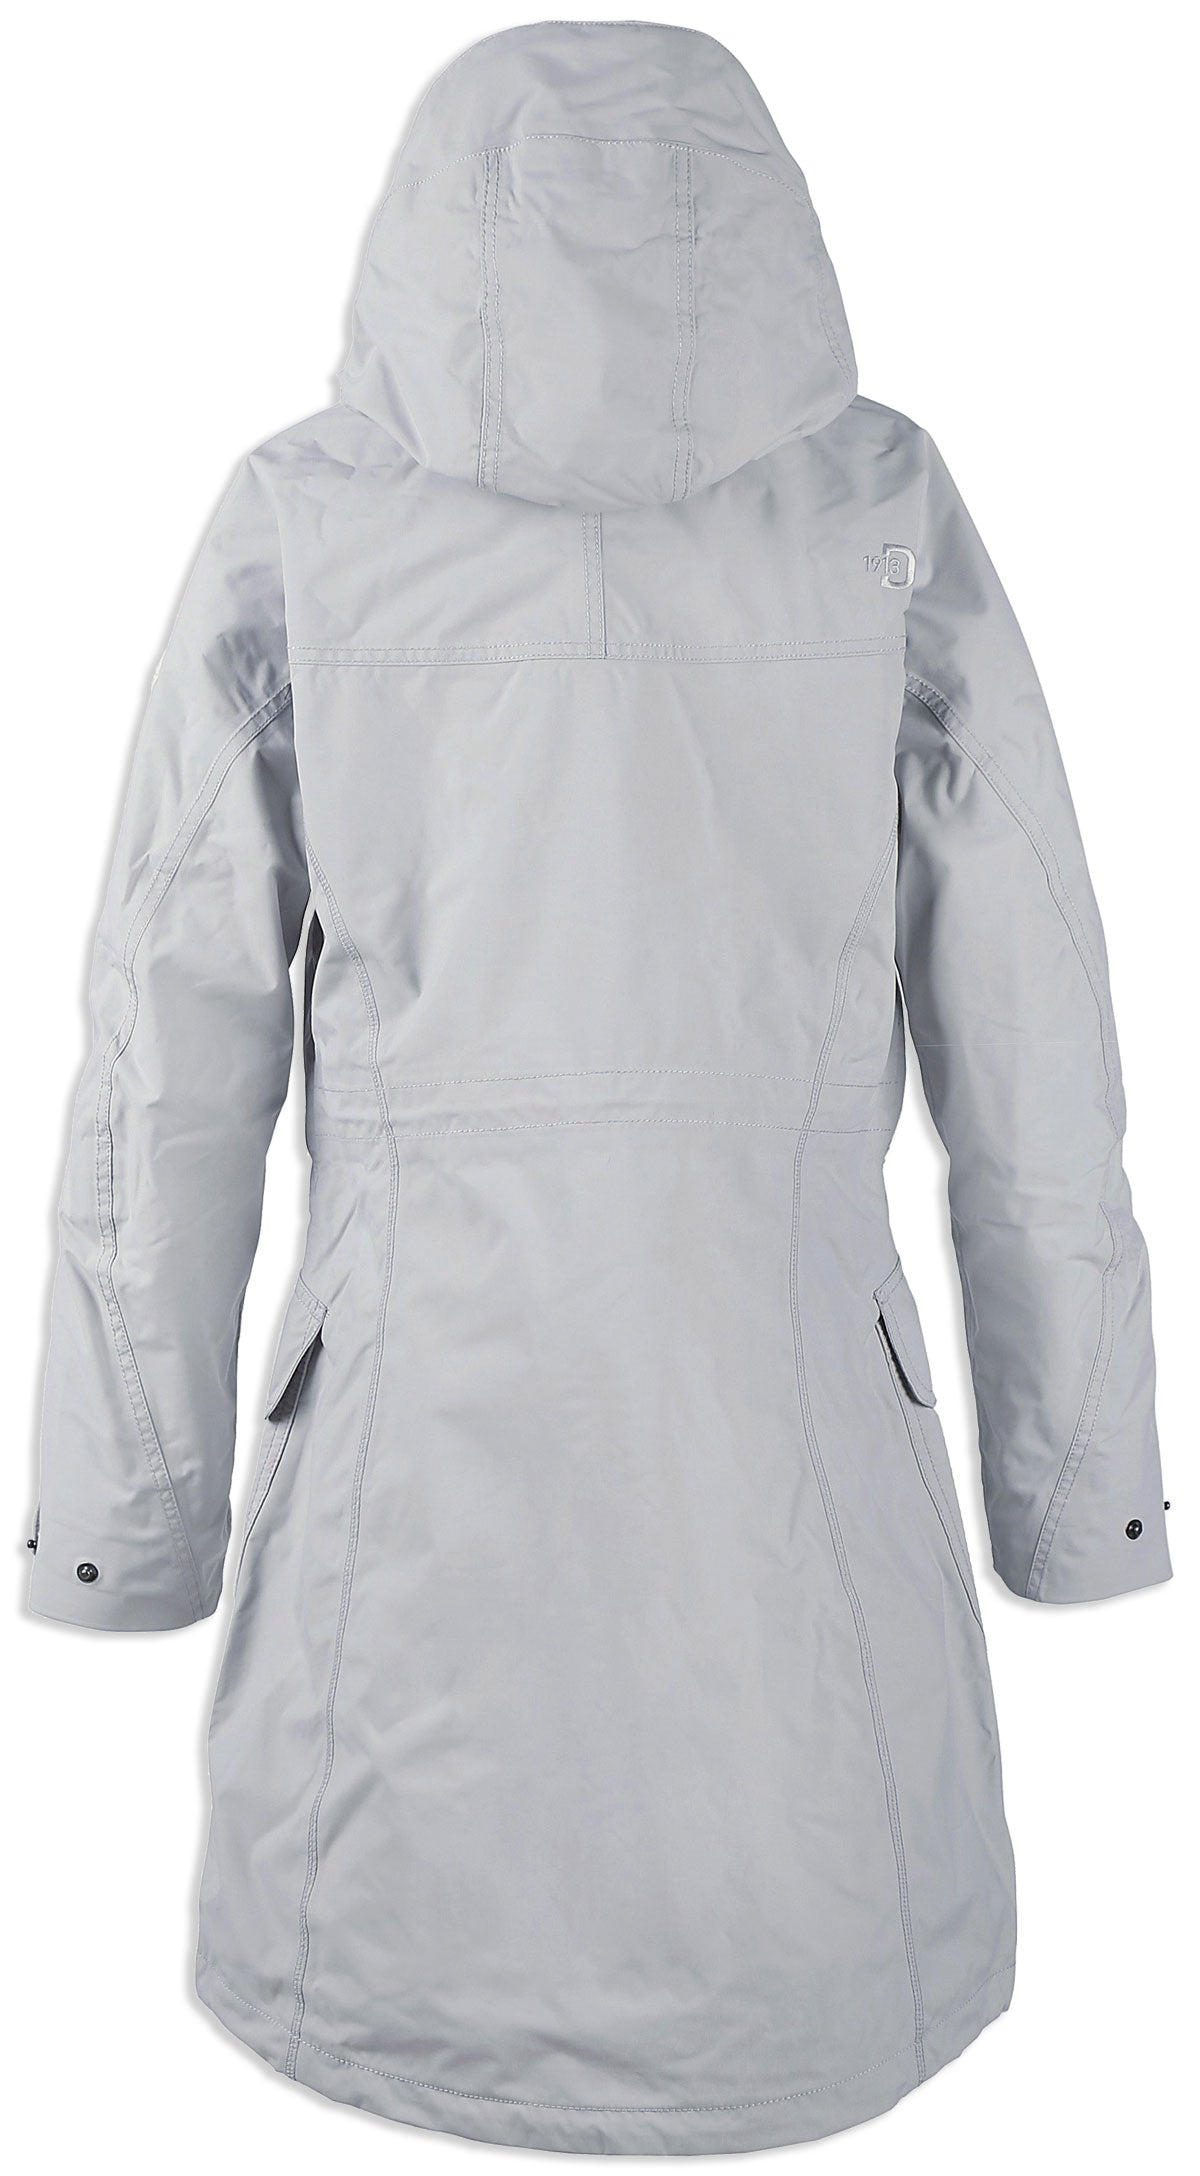 back Didriksons Ladies Thelma Waterproof parka coat